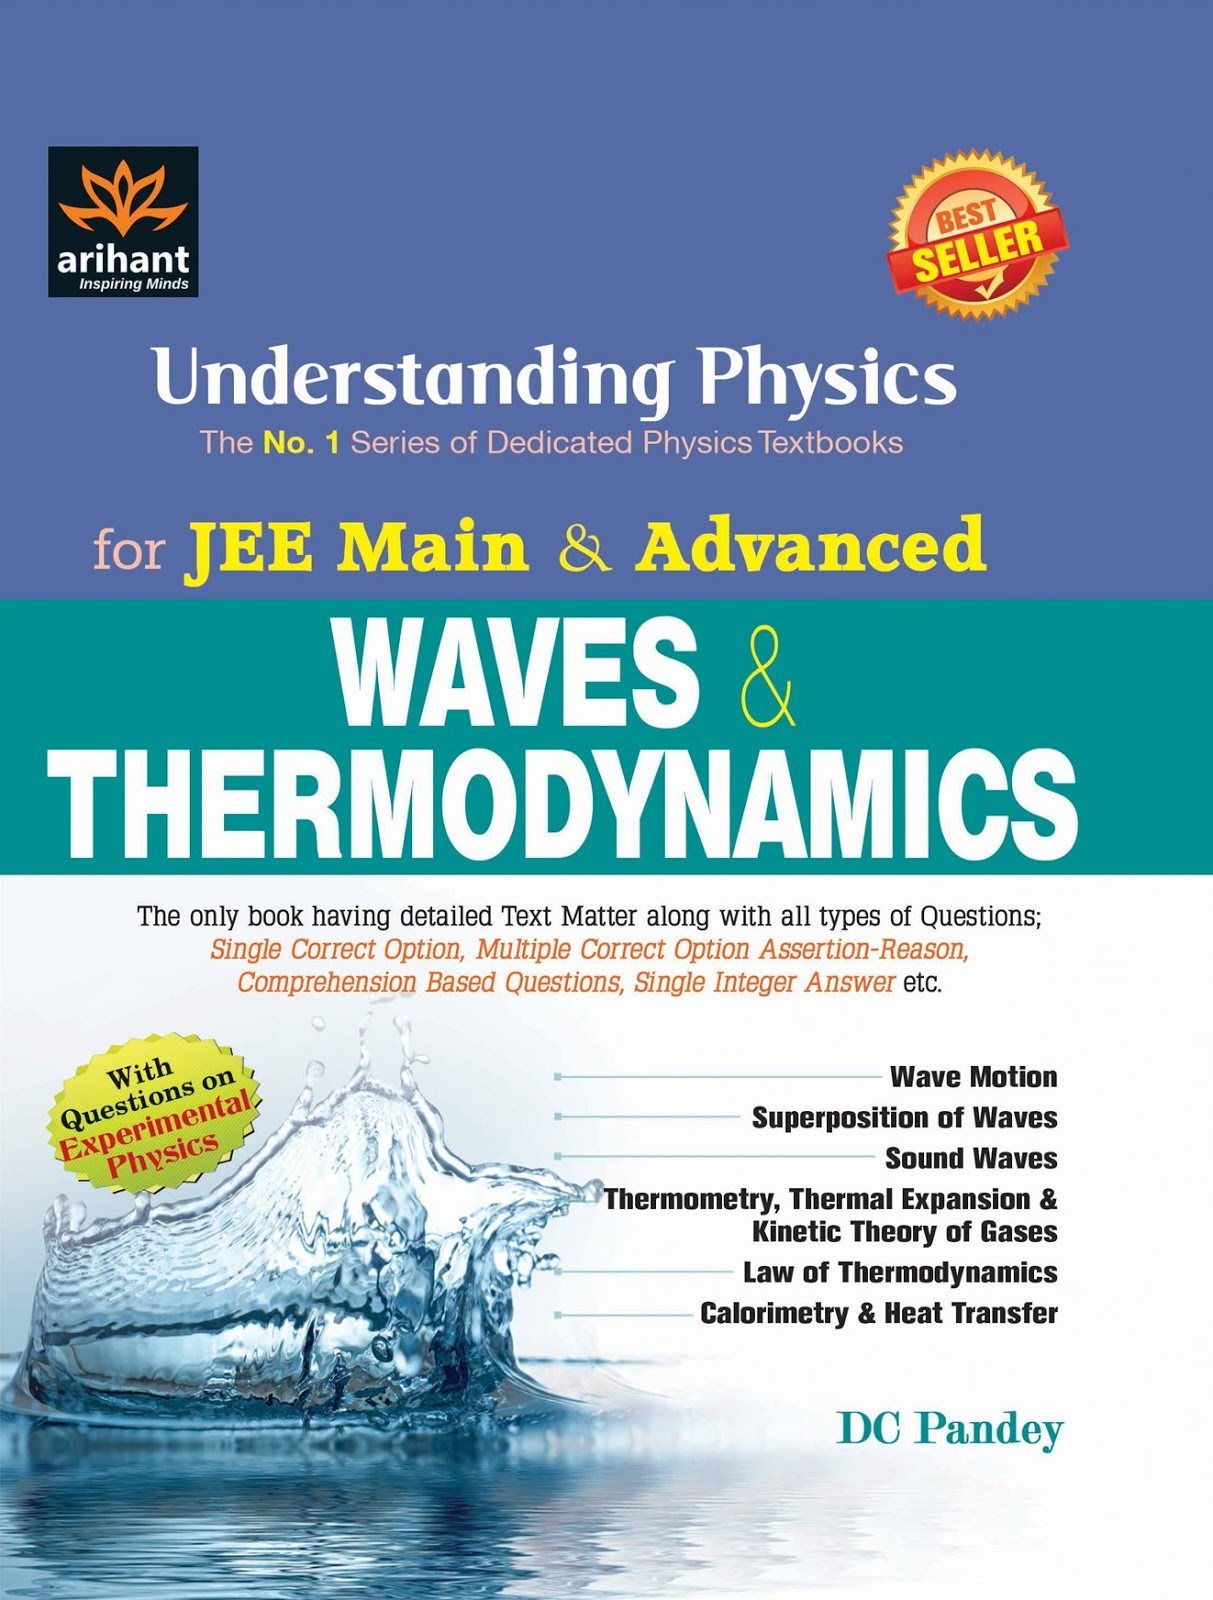 DC Pandey Waves and Thermodynamics Solution PDF | JEE Study